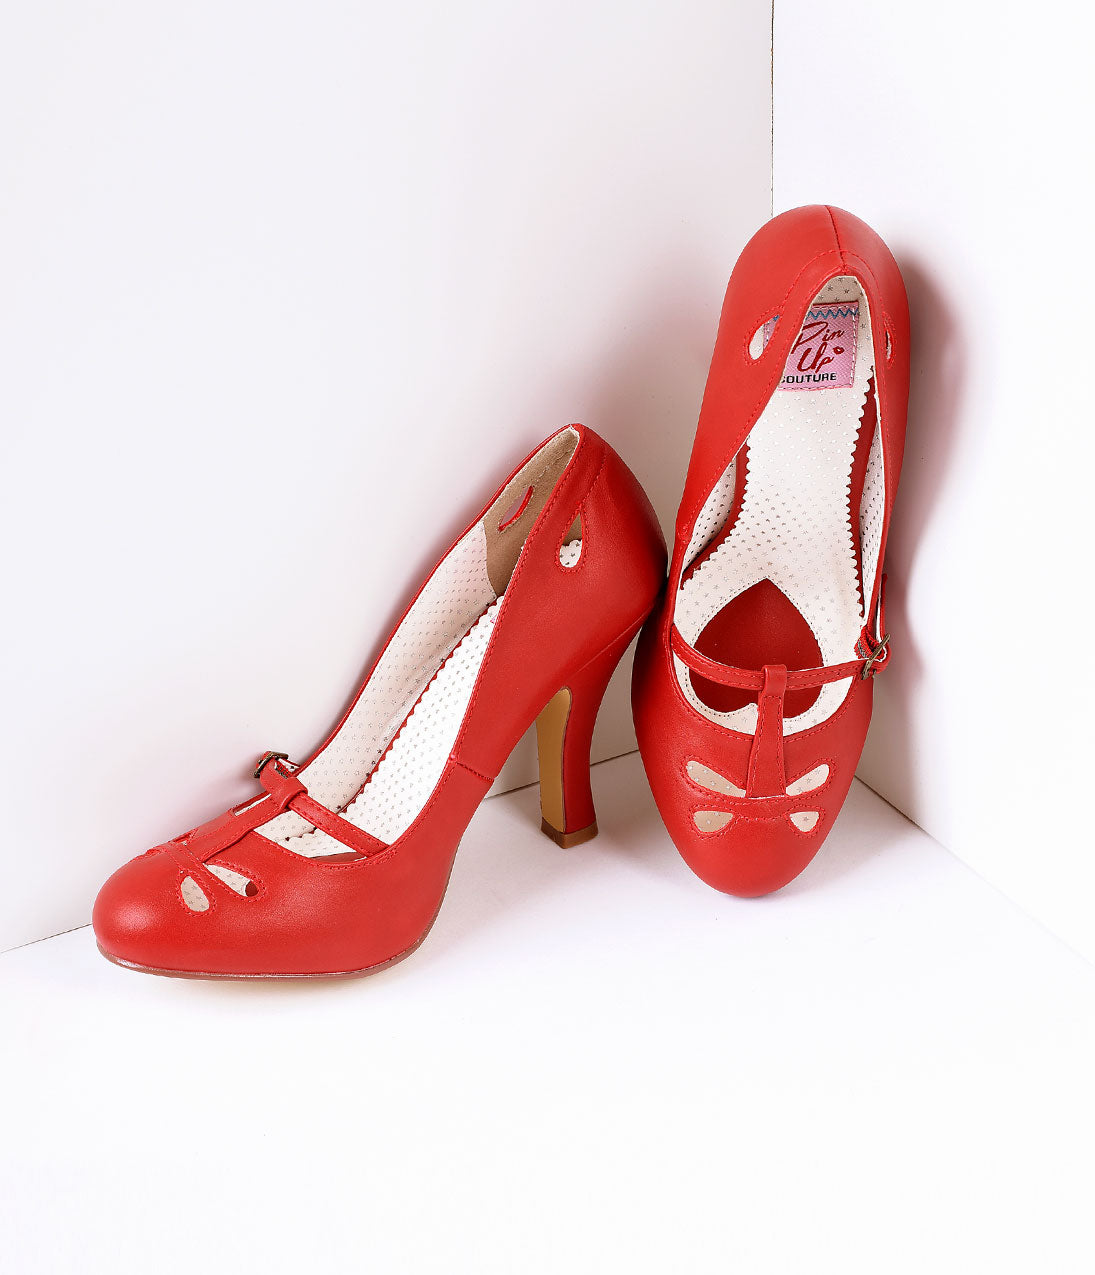 Vintage Style Shoes, Vintage Inspired Shoes Red Pleather Cut Out Strap Smitten Mary Jane Heels $57.00 AT vintagedancer.com